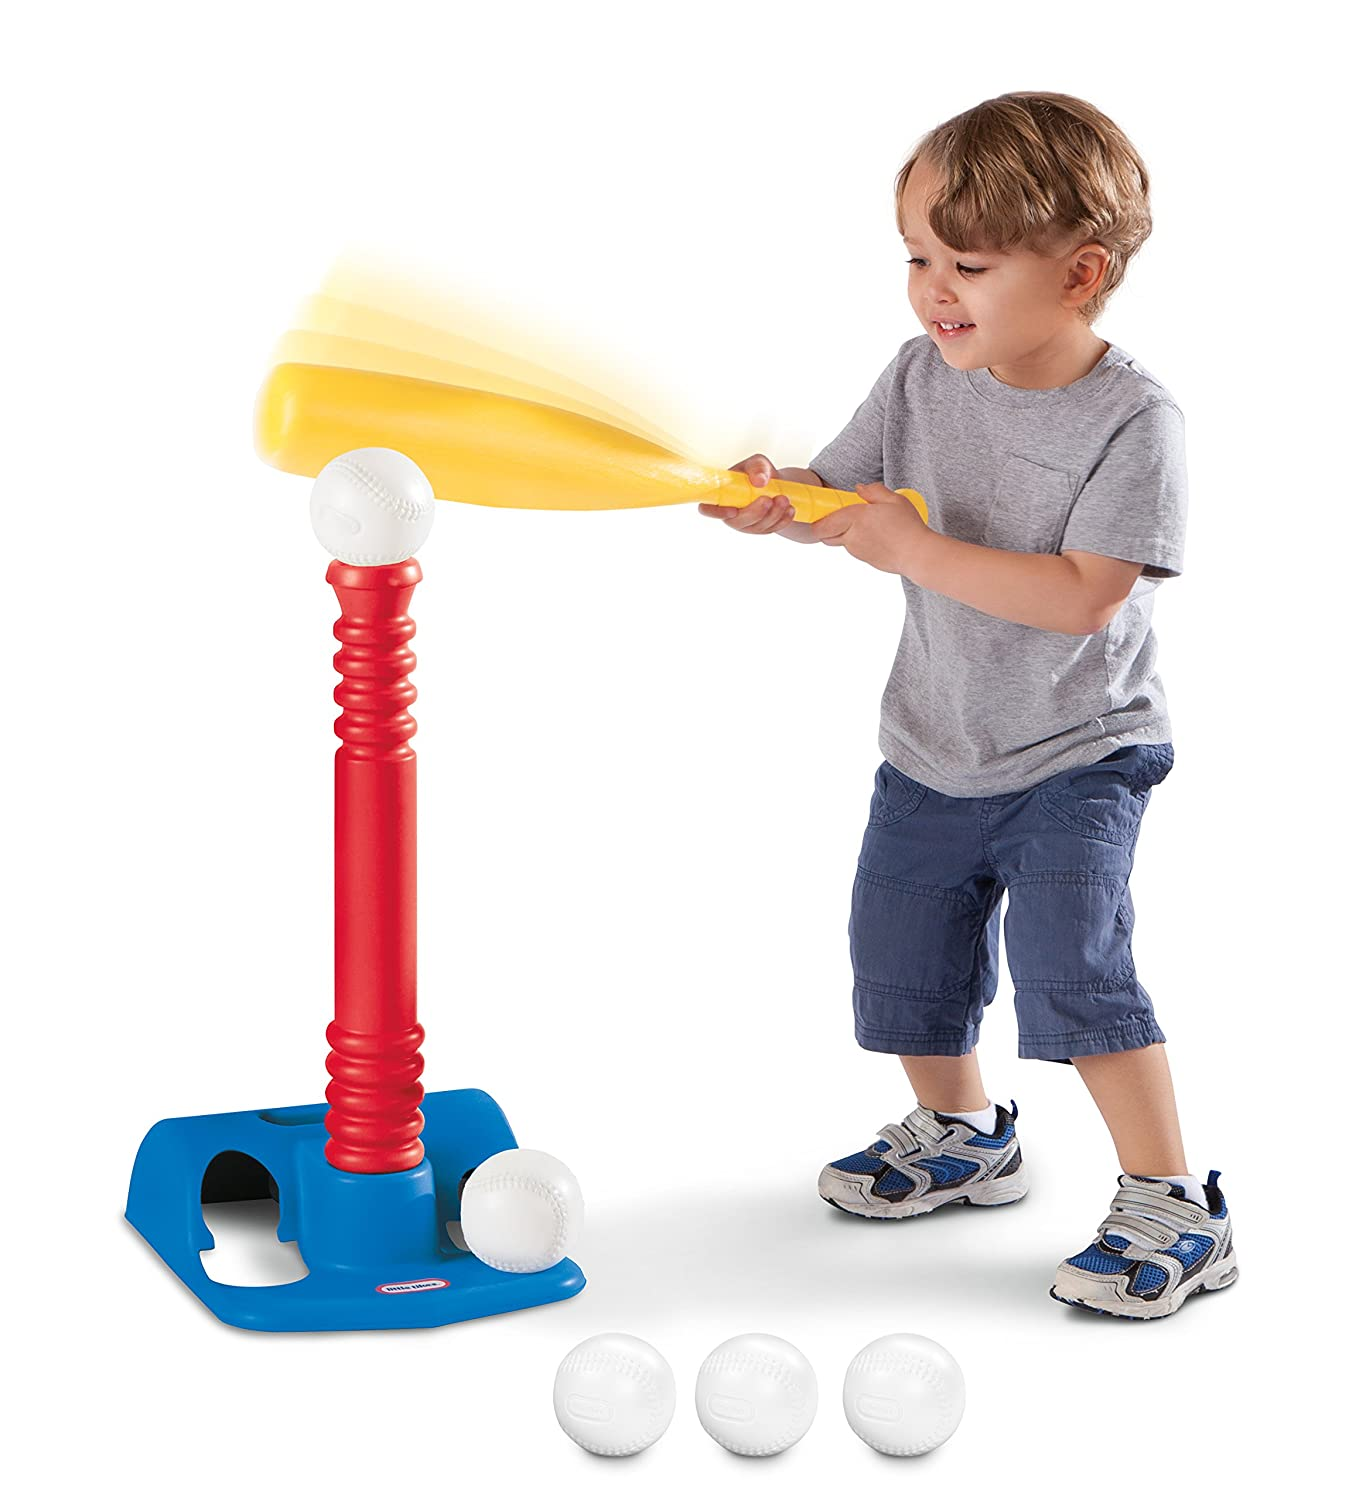 Fun Toys For Big Boys : Best toys gift ideas for year old boys reviewed in